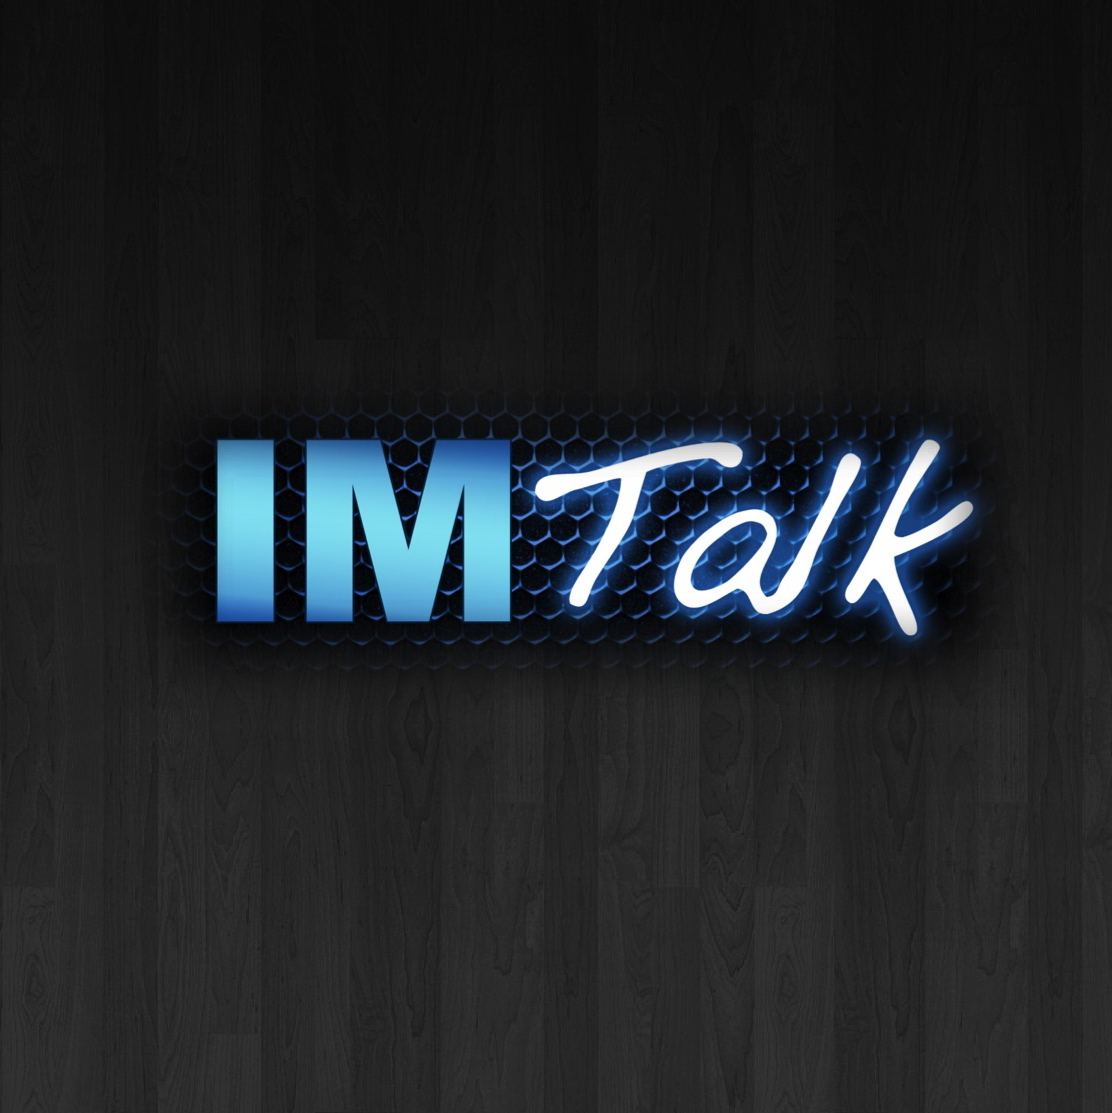 IMTalk Episode 709 - Lucy Gossage show art